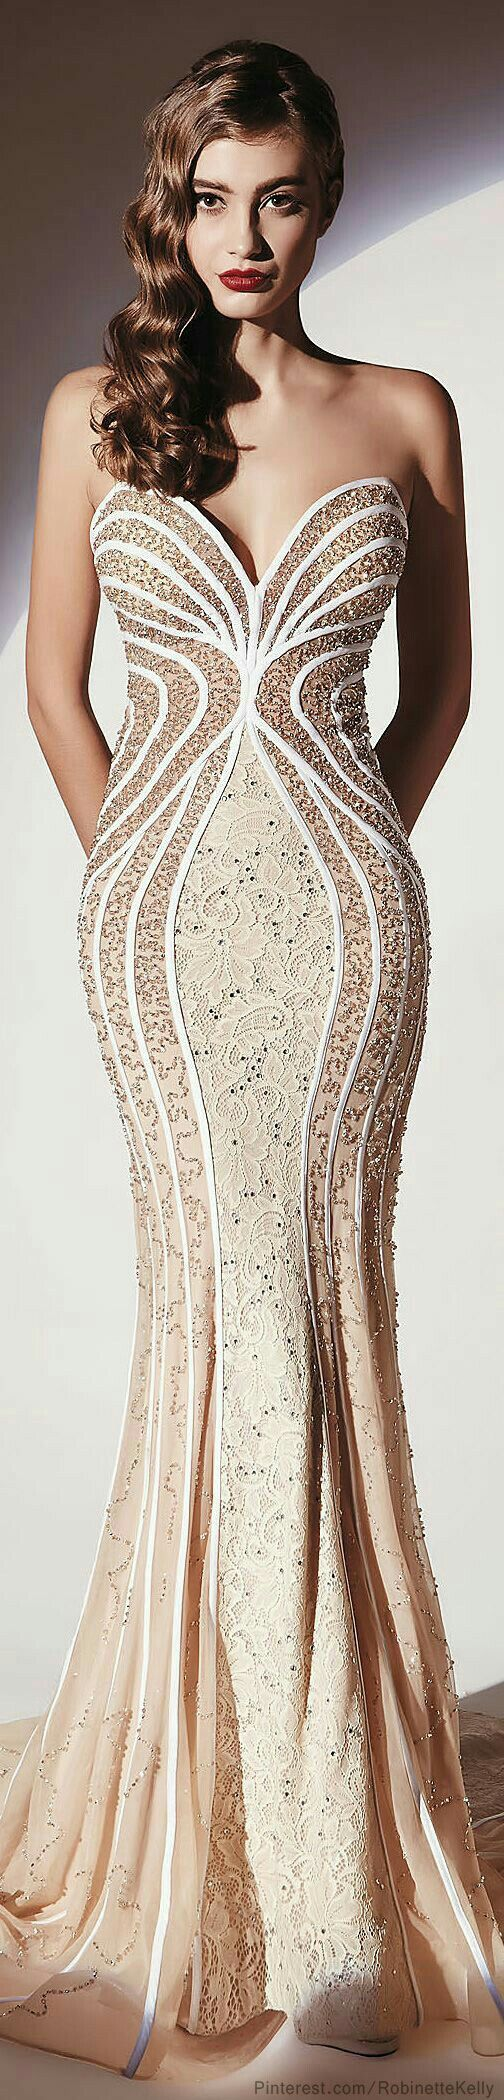 best best dressed women images on pinterest night out dresses